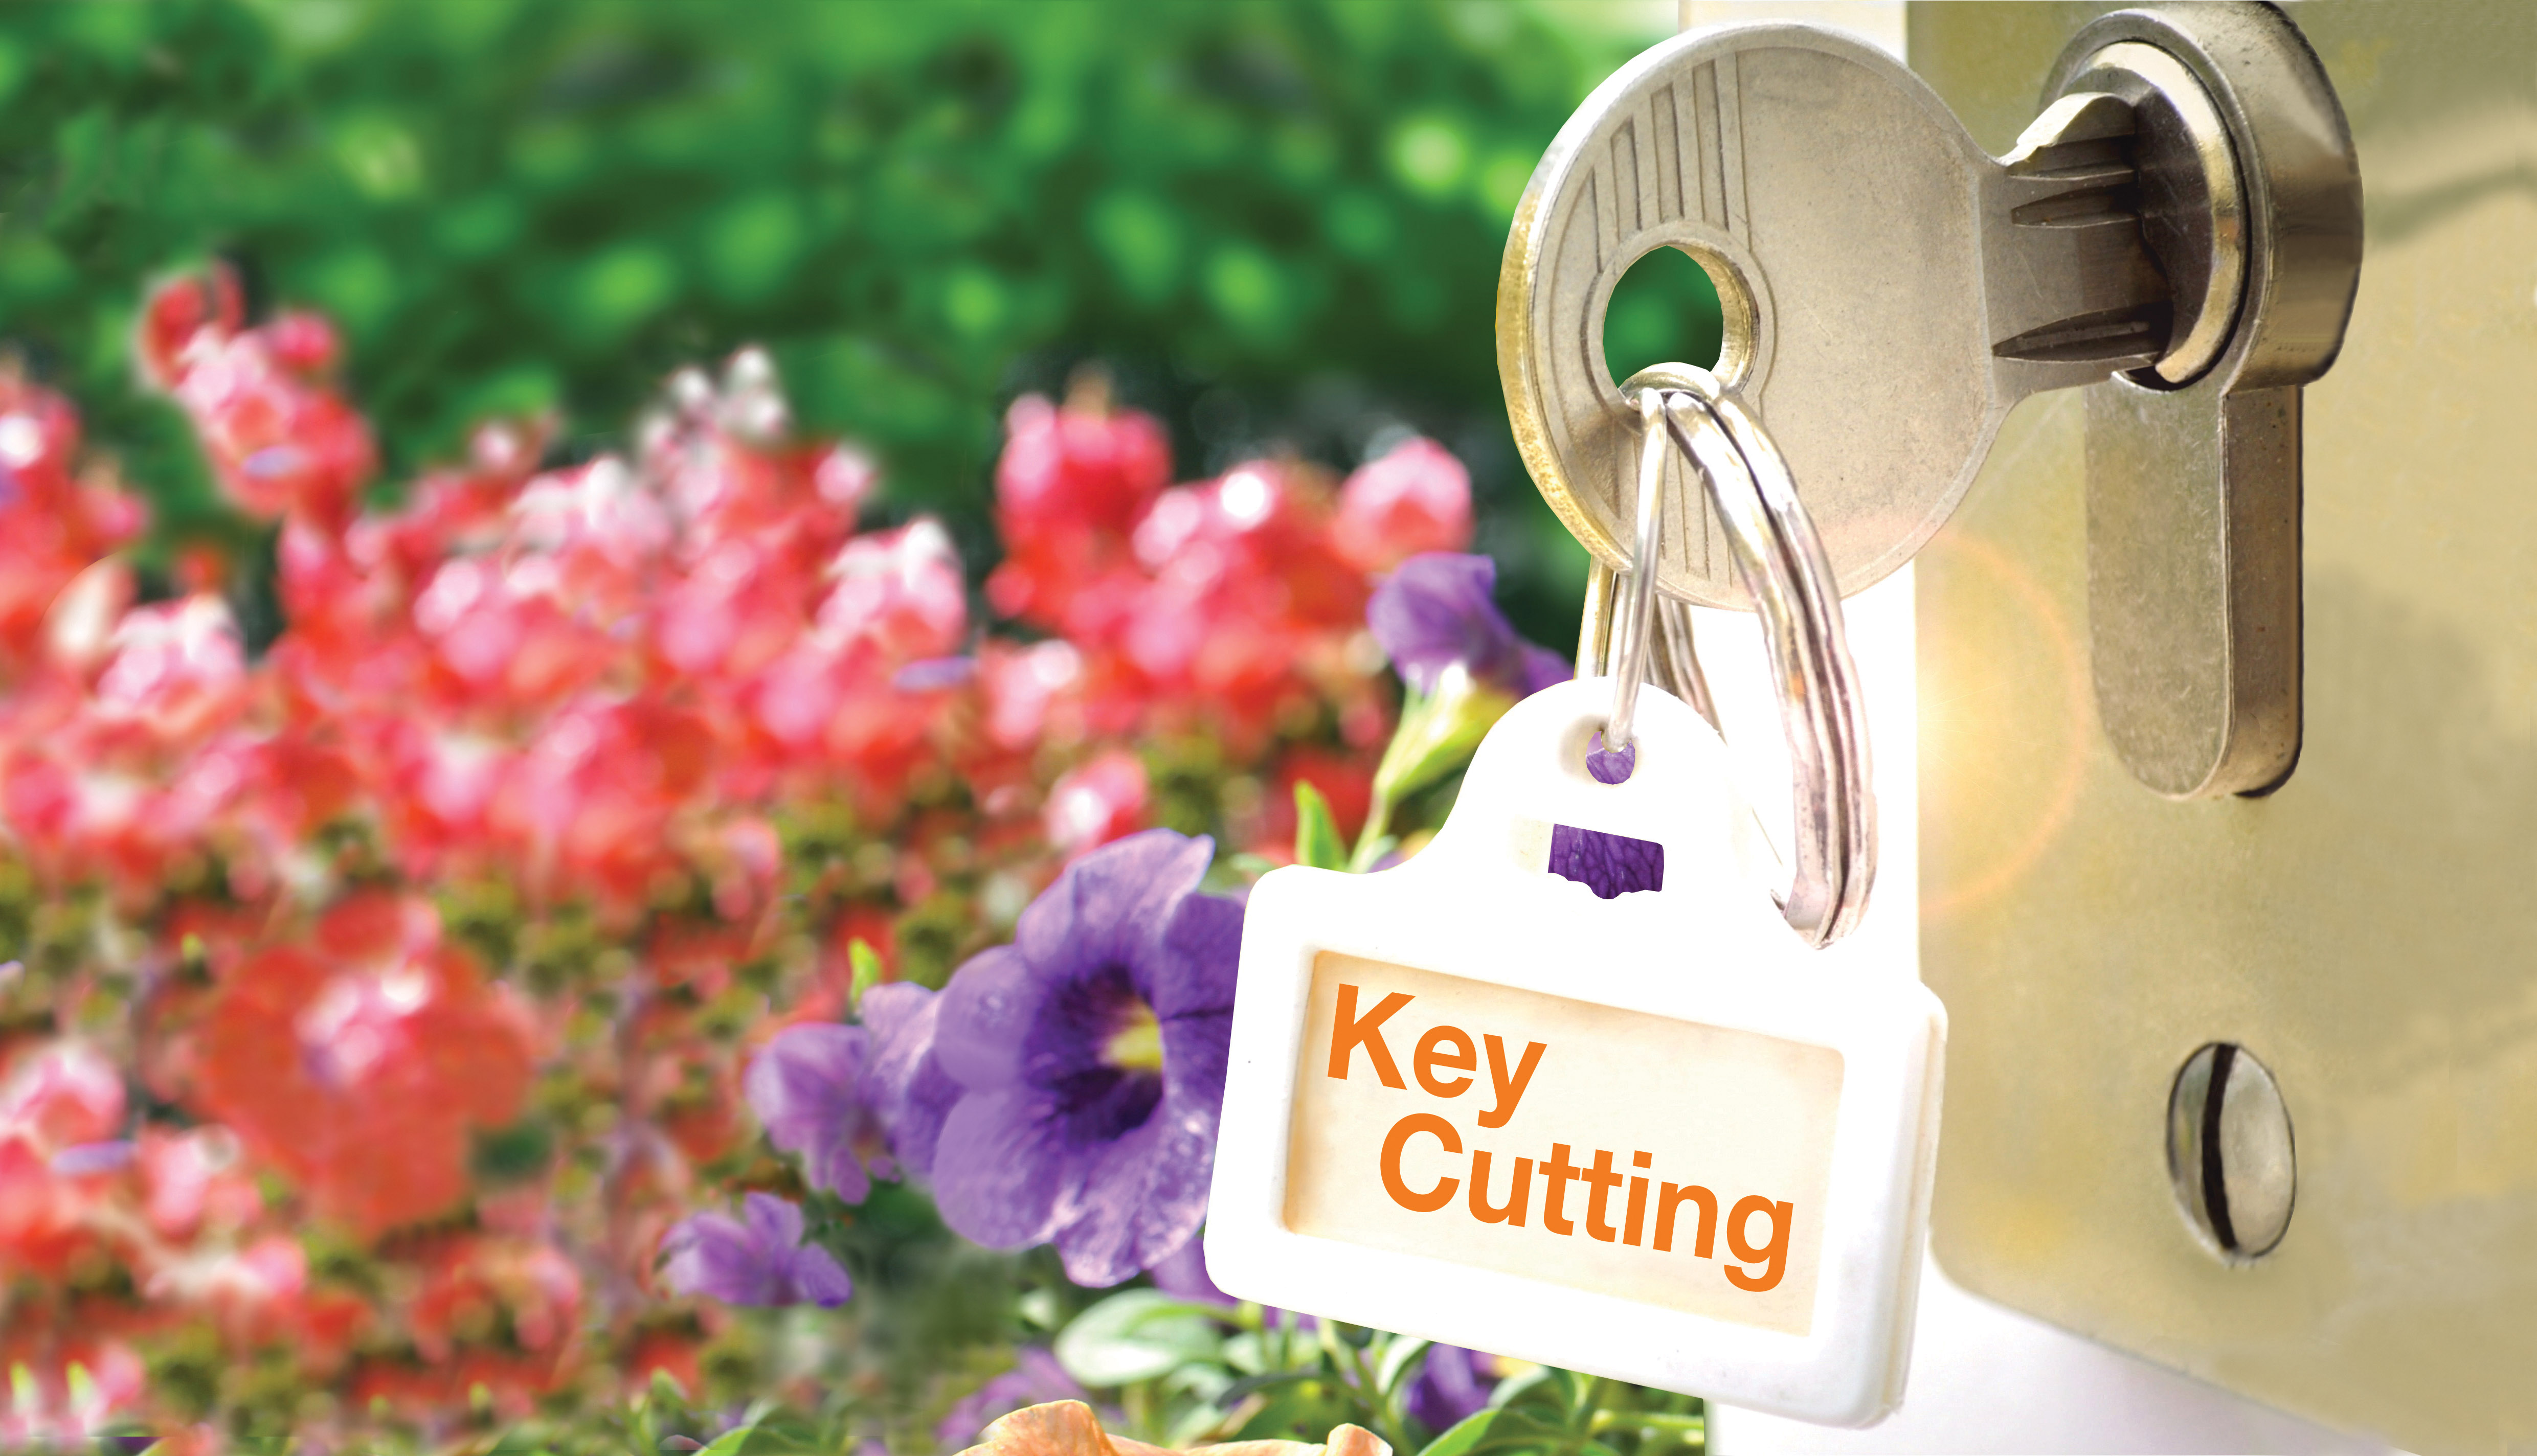 Key Cutting While You Wait